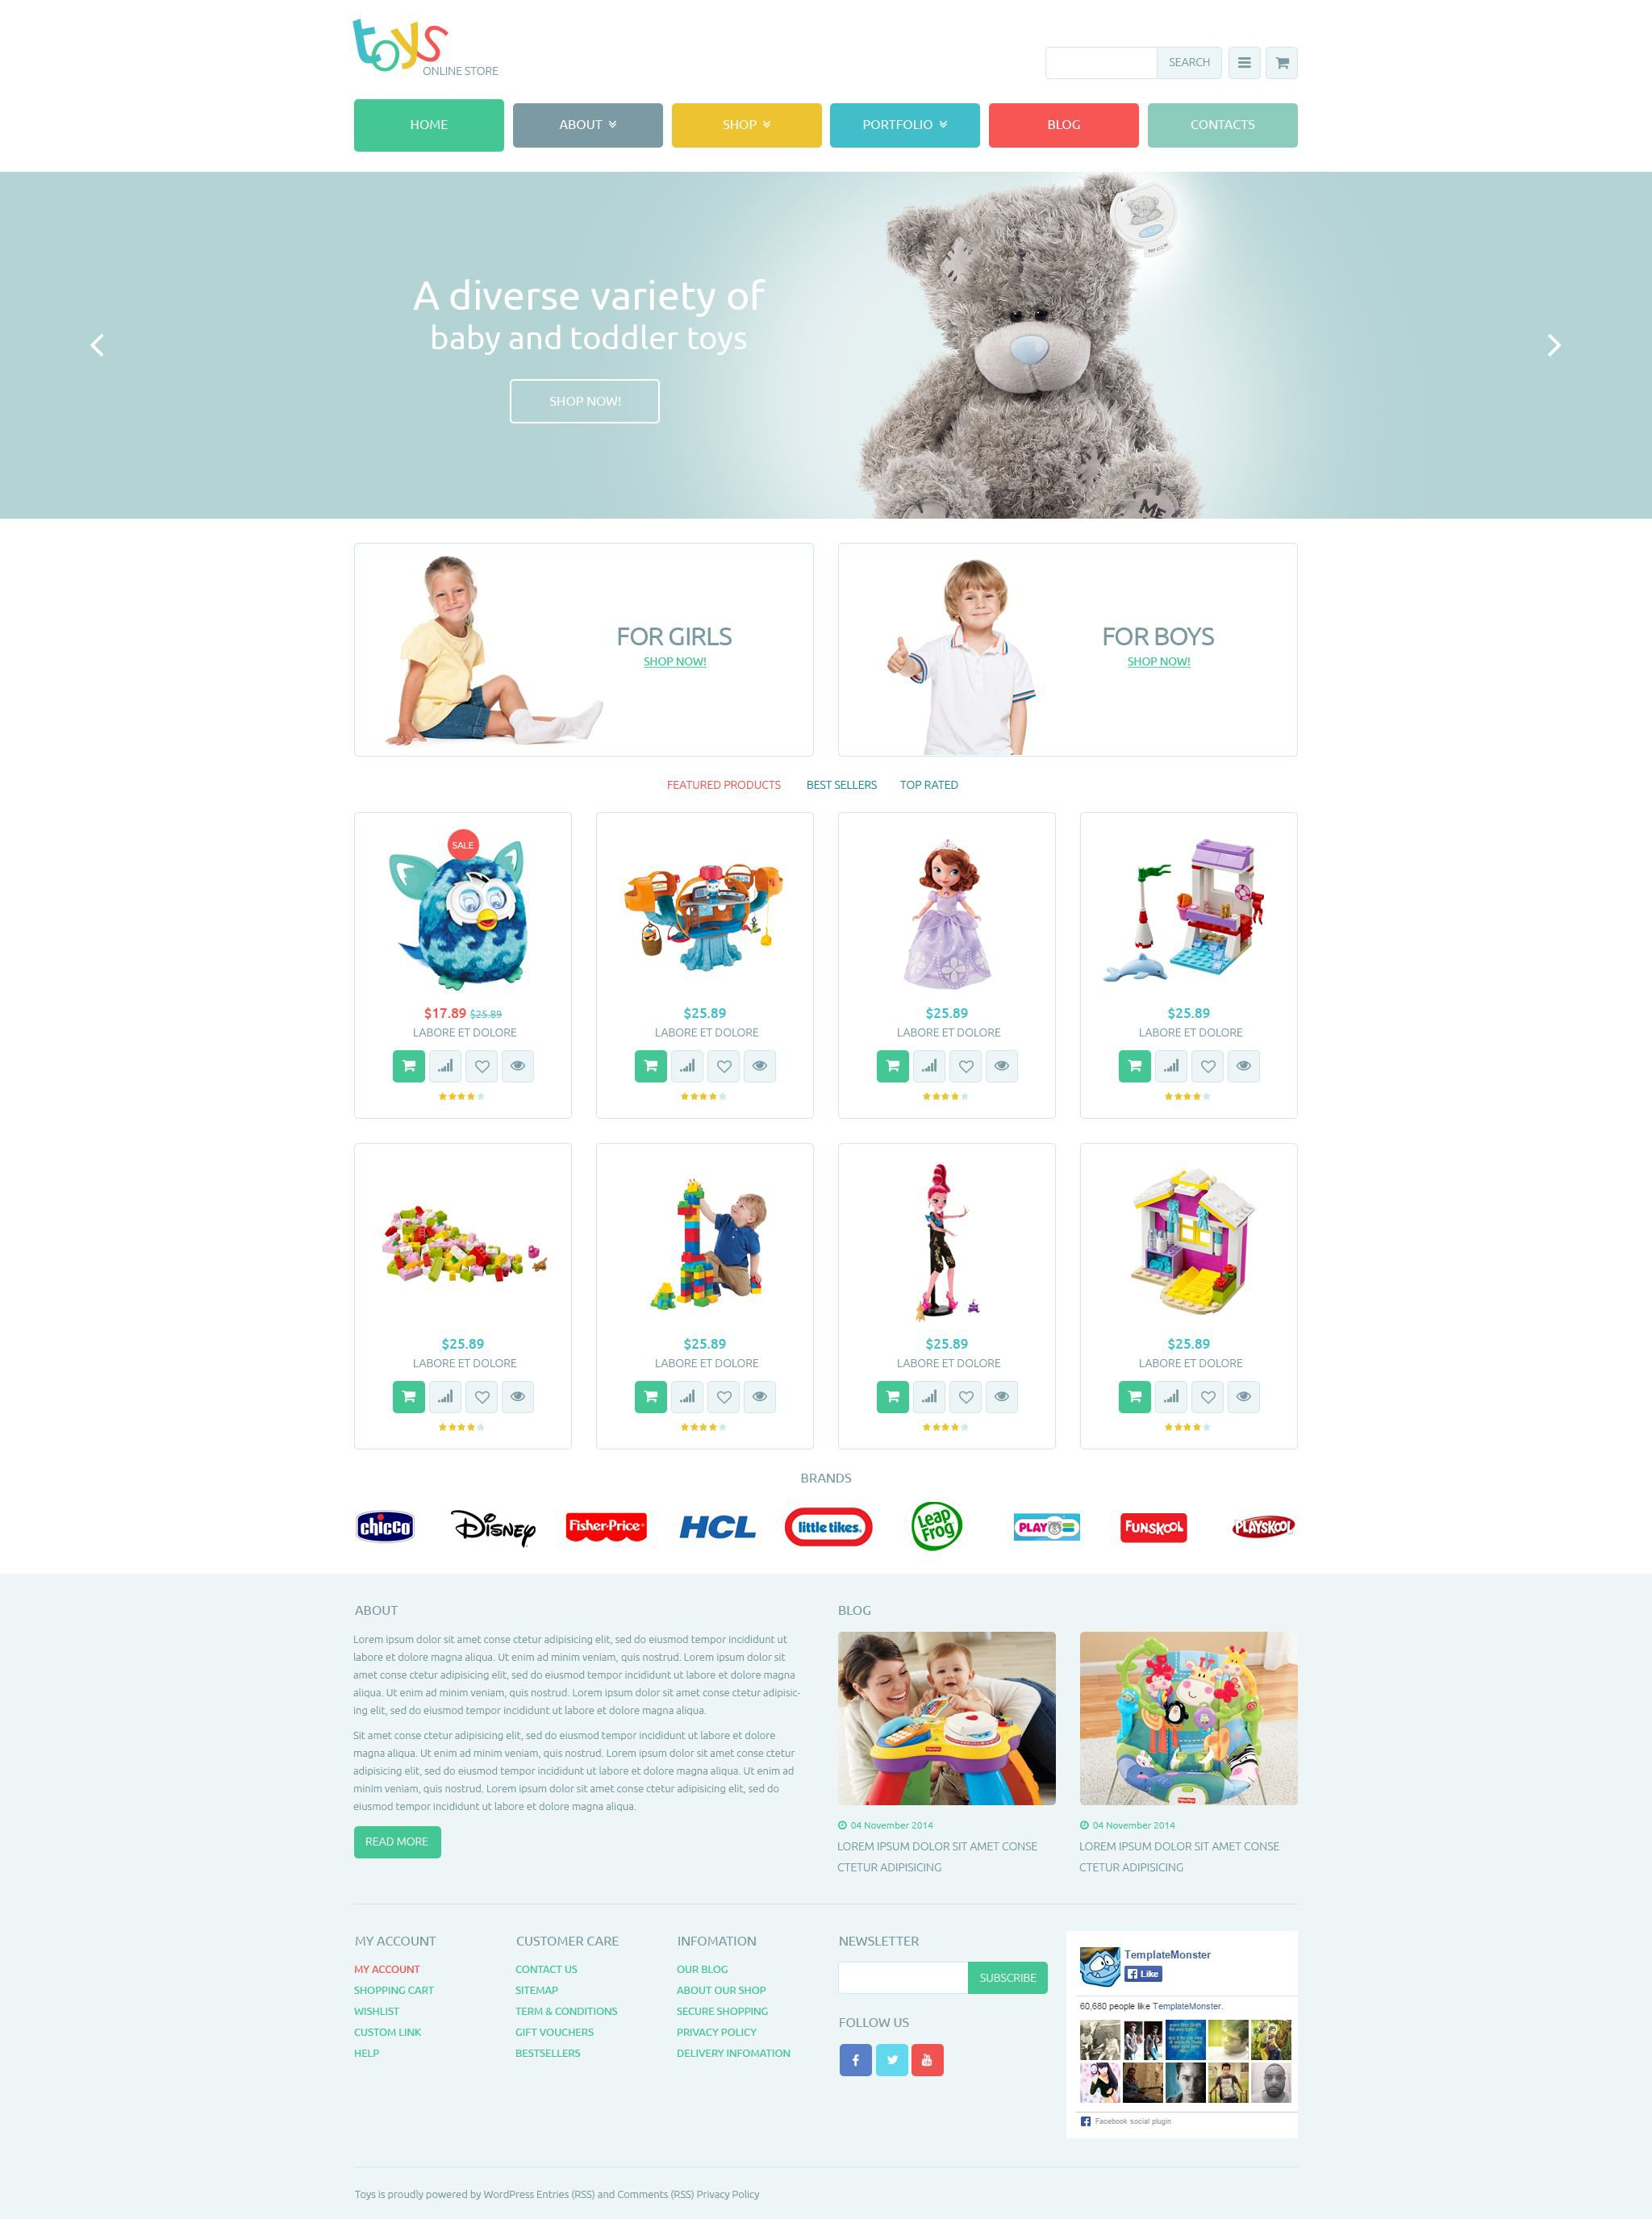 The Toy Toys Store WooCommerce Design 53658, one of the best WooCommerce themes of its kind (most popular, online casino), also known as toy toys store WooCommerce template, baby online shop WooCommerce template, gift WooCommerce template, toy WooCommerce template, exclusive WooCommerce template, children WooCommerce template, animals WooCommerce template, wildlife WooCommerce template, party WooCommerce template, favors WooCommerce template, cool WooCommerce template, vehicle WooCommerce template, outdoor WooCommerce template, developmental WooCommerce template, car WooCommerce template, doll WooCommerce template, game WooCommerce template, dog WooCommerce template, teddy WooCommerce template, bear WooCommerce template, roadster WooCommerce template, frog WooCommerce template, mover WooCommerce template, table WooCommerce template, ball WooCommerce template, puzzle WooCommerce template, bus WooCommerce template, plush WooCommerce template, battleship WooCommerce template, air WooCommerce template, chair WooCommerce template, presents WooCommerce template, snowmen WooCommerce template, delivery and related with toy toys store, baby online shop, gift, toy, exclusive, children, animals, wildlife, party, favors, cool, vehicle, outdoor, developmental, car, doll, game, dog, teddy, bear, roadster, frog, mover, table, ball, puzzle, bus, plush, battleship, air, chair, presents, snowmen, delivery, etc.